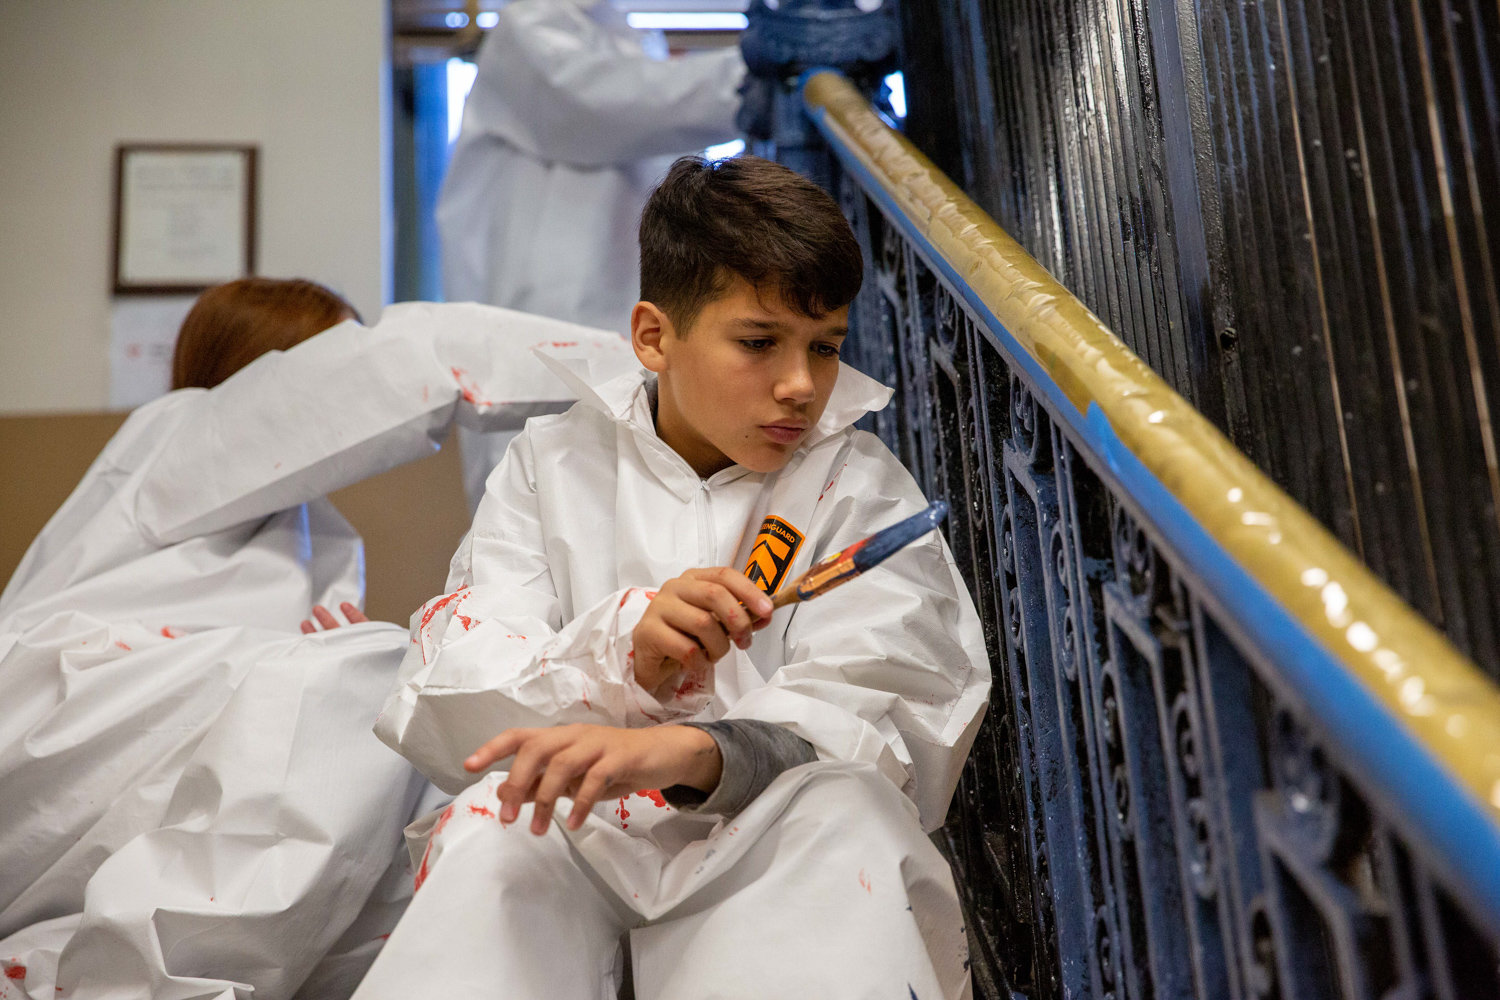 Logan Donato, son of Local Union No. 3 IBEW member Chris Donato, paints a banister inside the Kingsbridge Heights Community Center on Nov. 16. The union teamed up with Rebuilding Together NYC to fix up the center, including repainting, simple rewiring work and moulding replacement.